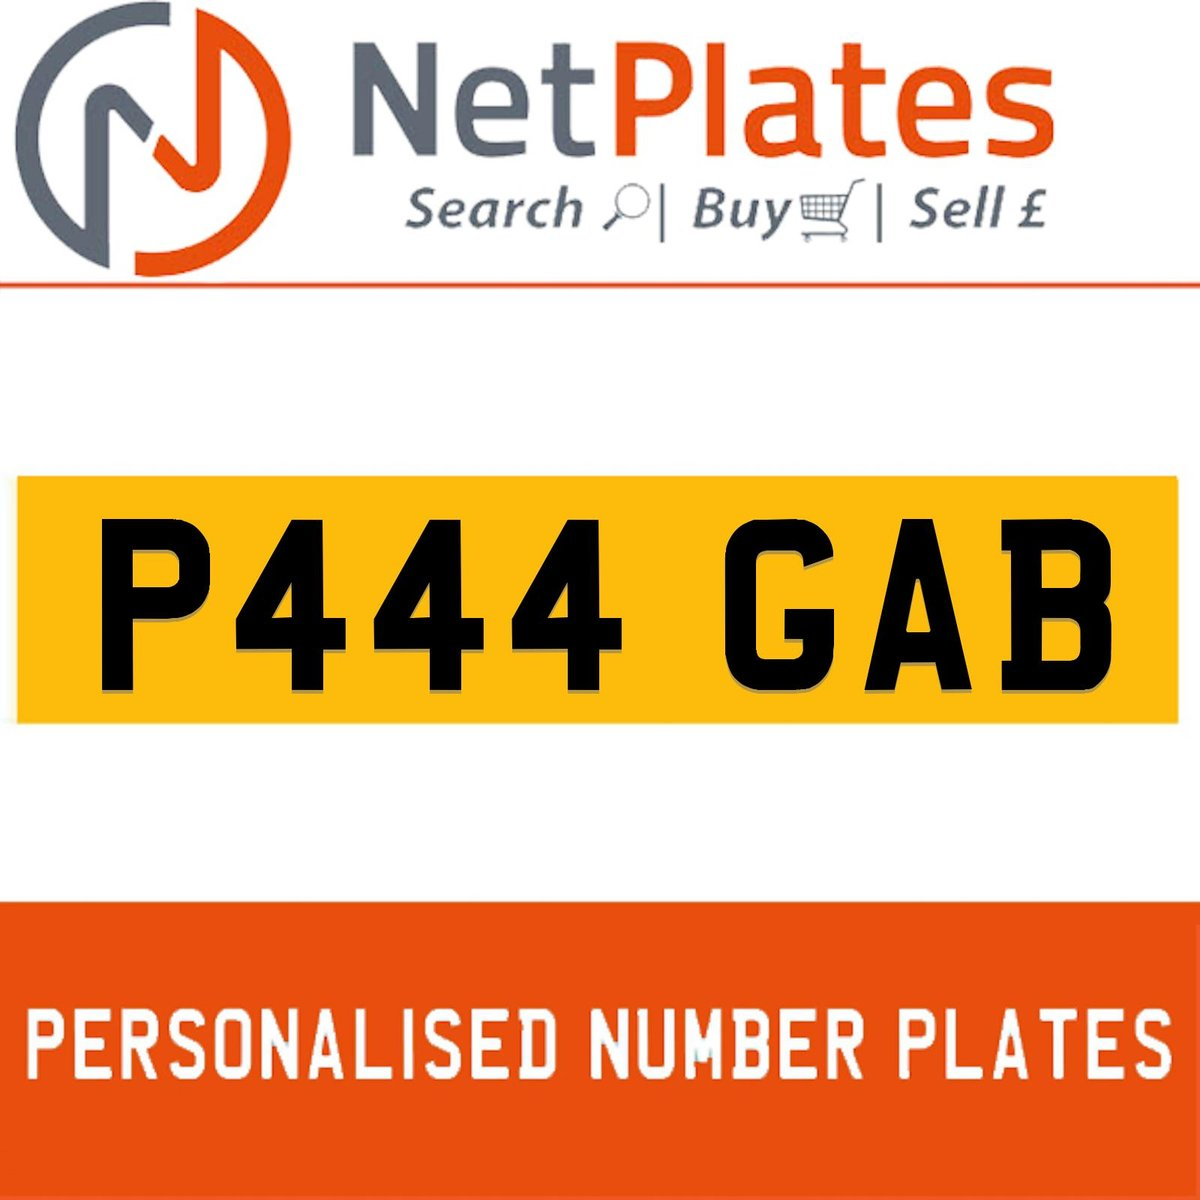 1900 P444 GAB PERSONALISED PRIVATE CHERISHED DVLA NUMBER PLATE For Sale (picture 1 of 5)